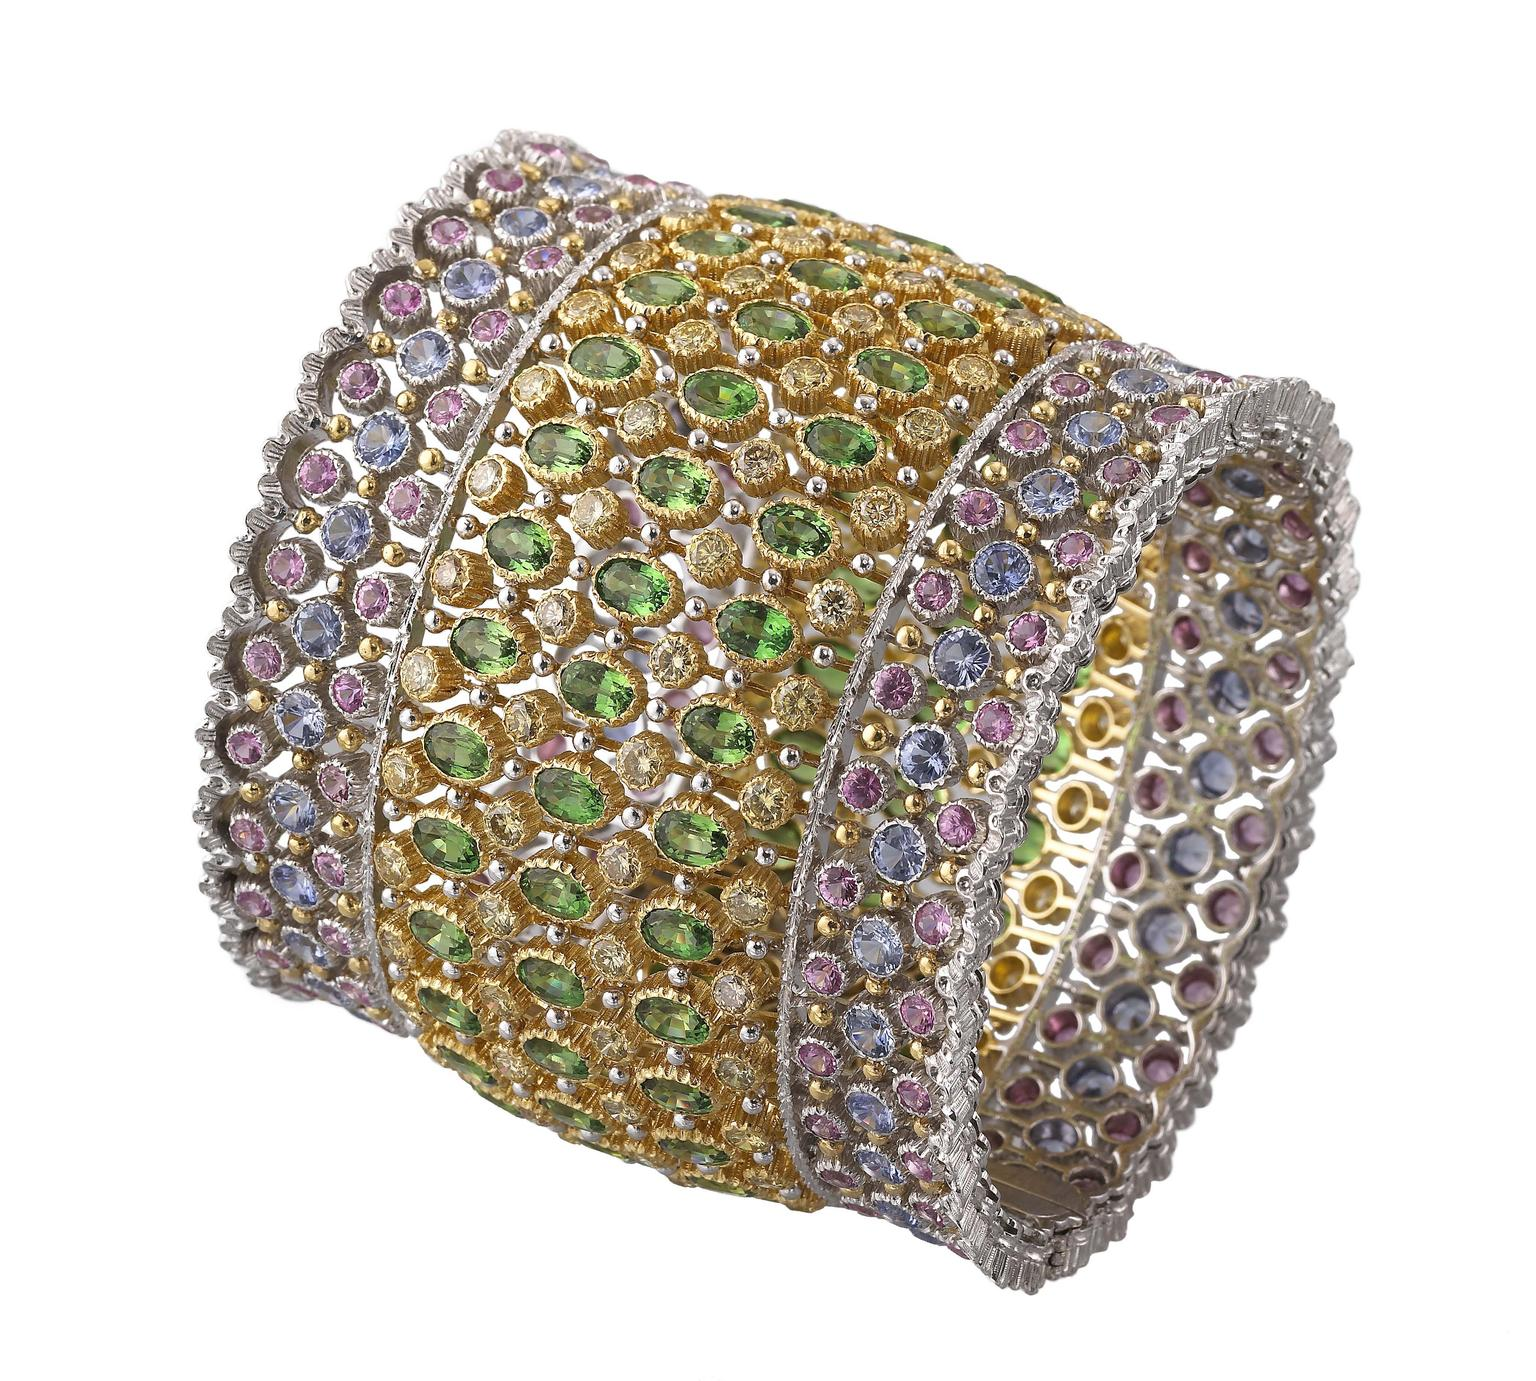 Buccellati cuff bracelet with 51.41ct tsavorites, Fancy diamonds and blue and pink sapphires.